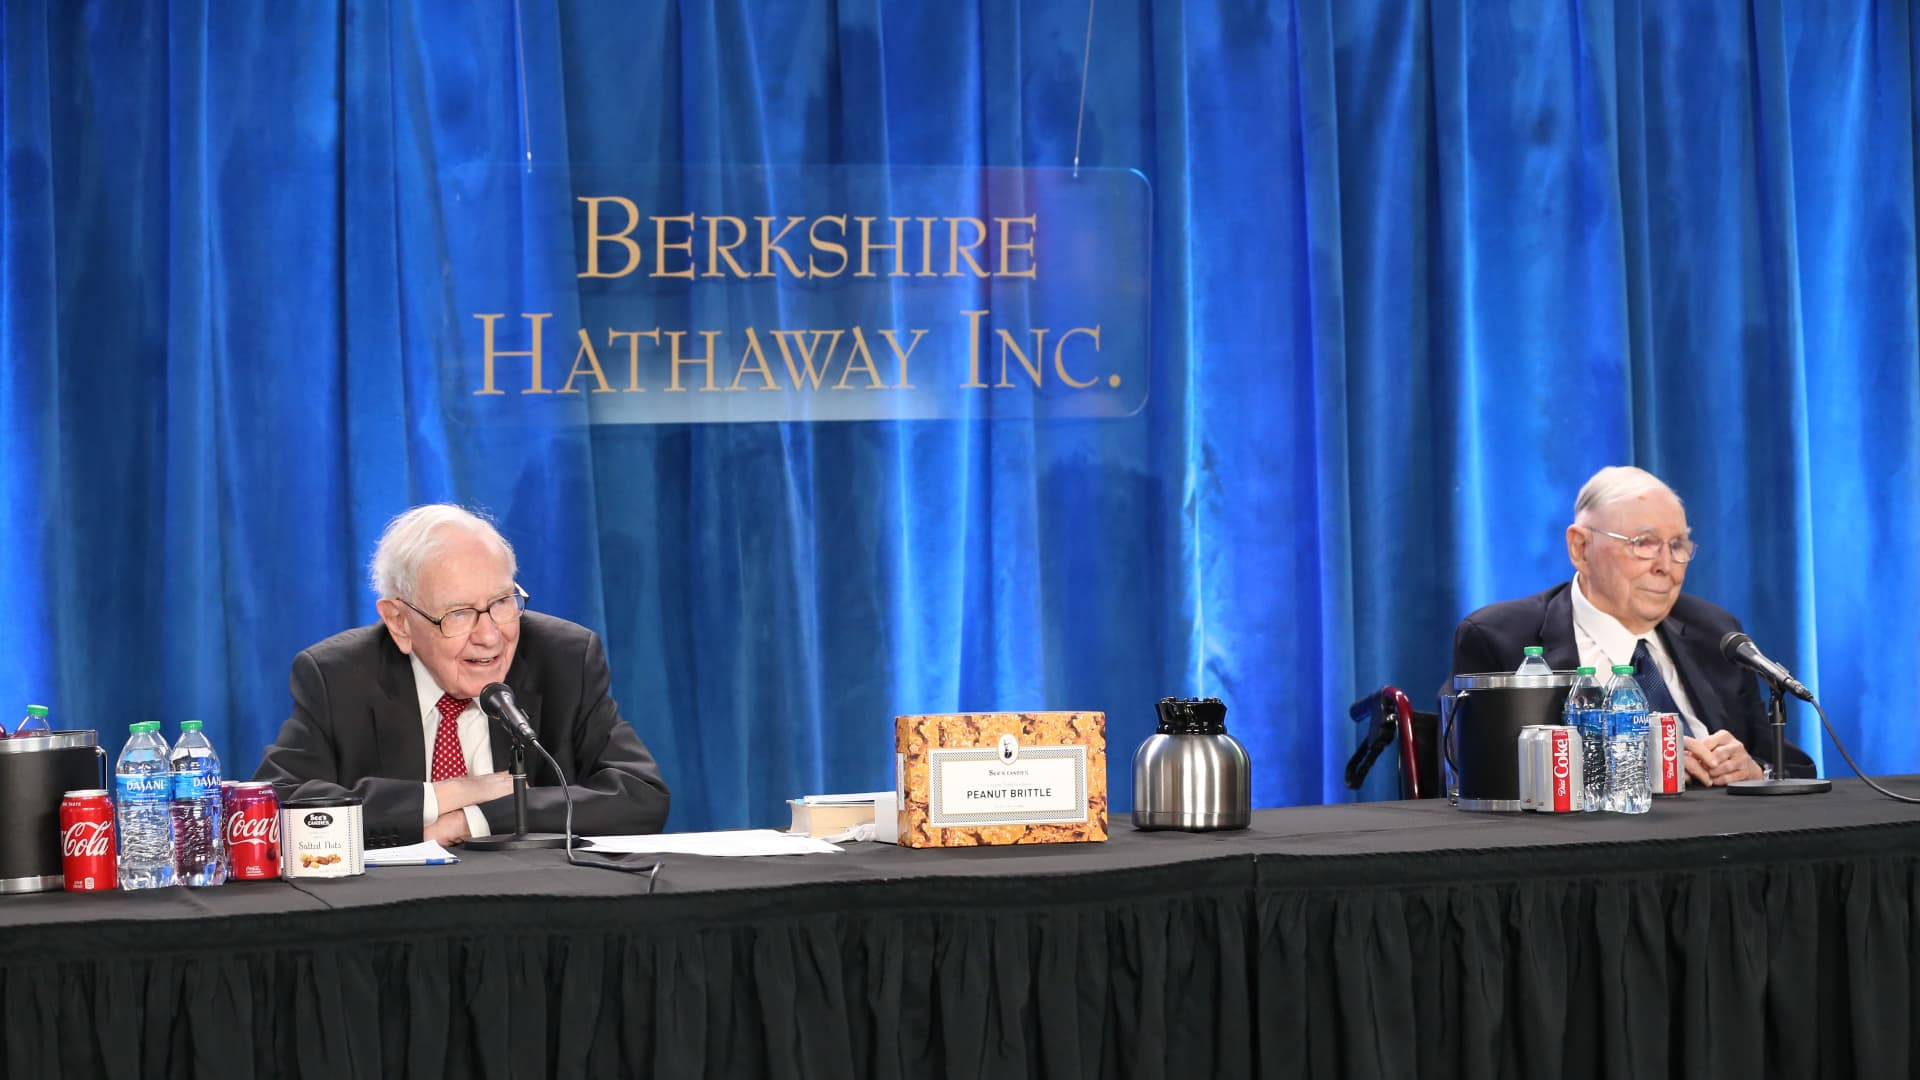 Warren Buffett and Charlie Munger at Berkshire Hathaway's annual meeting in Los Angeles, California. May 1, 2021.